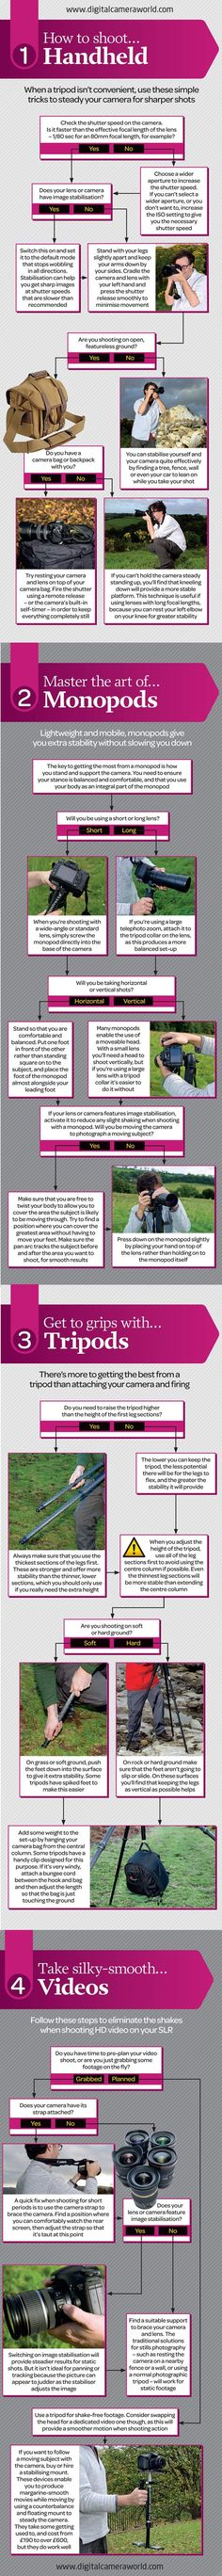 Camera Shake: the ultimate cheat sheet for using tripods, monopods and shooting handheld